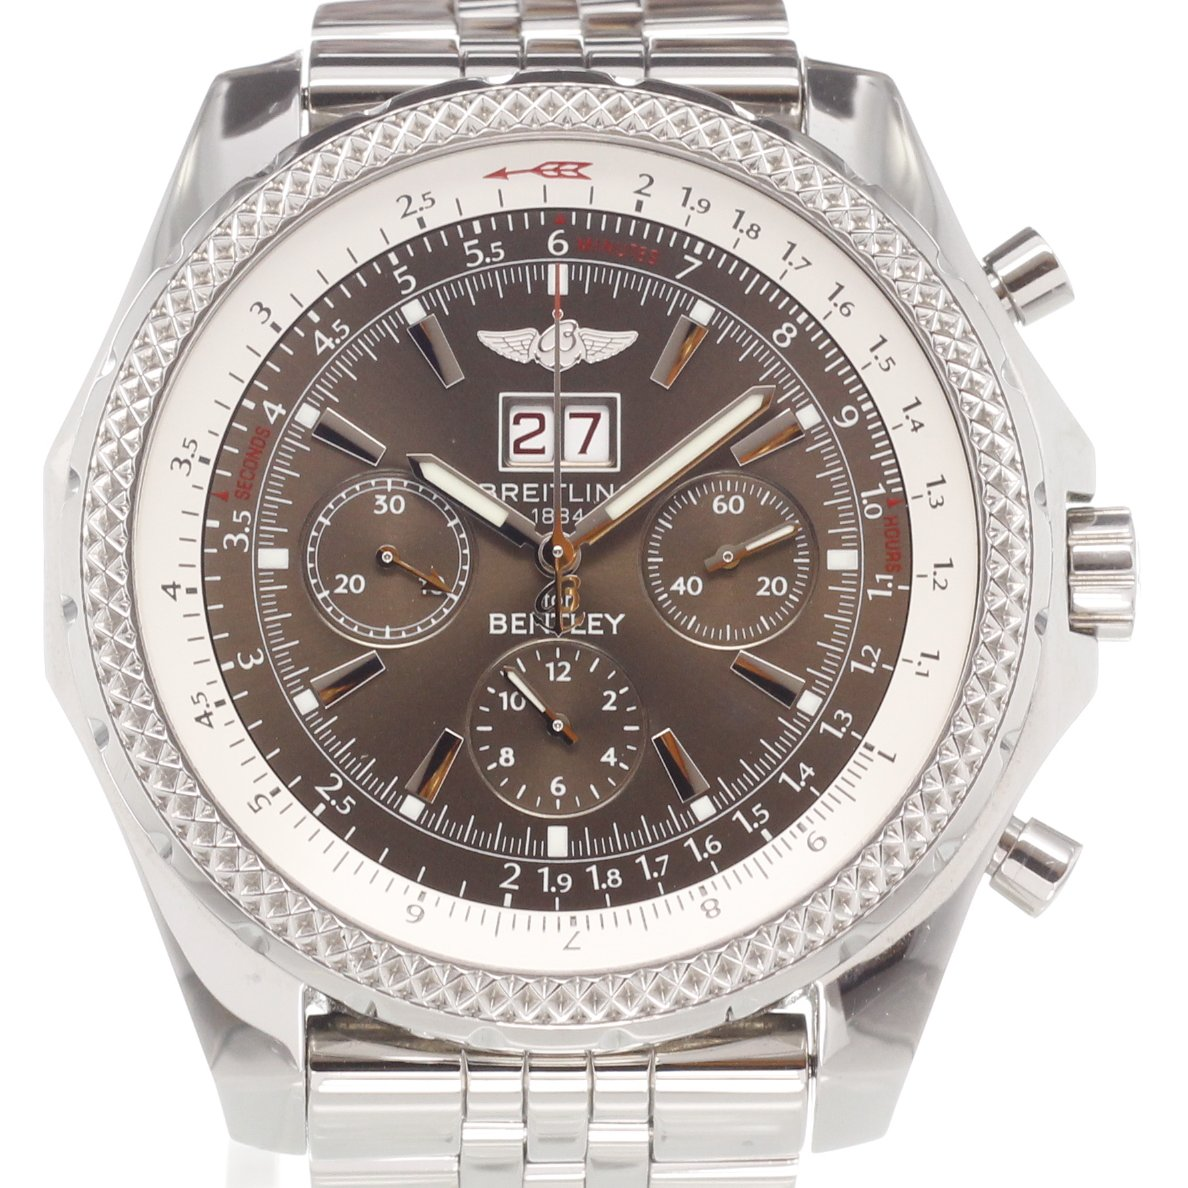 Bentley Breitling Watch Prices ,breitling Montbrillant